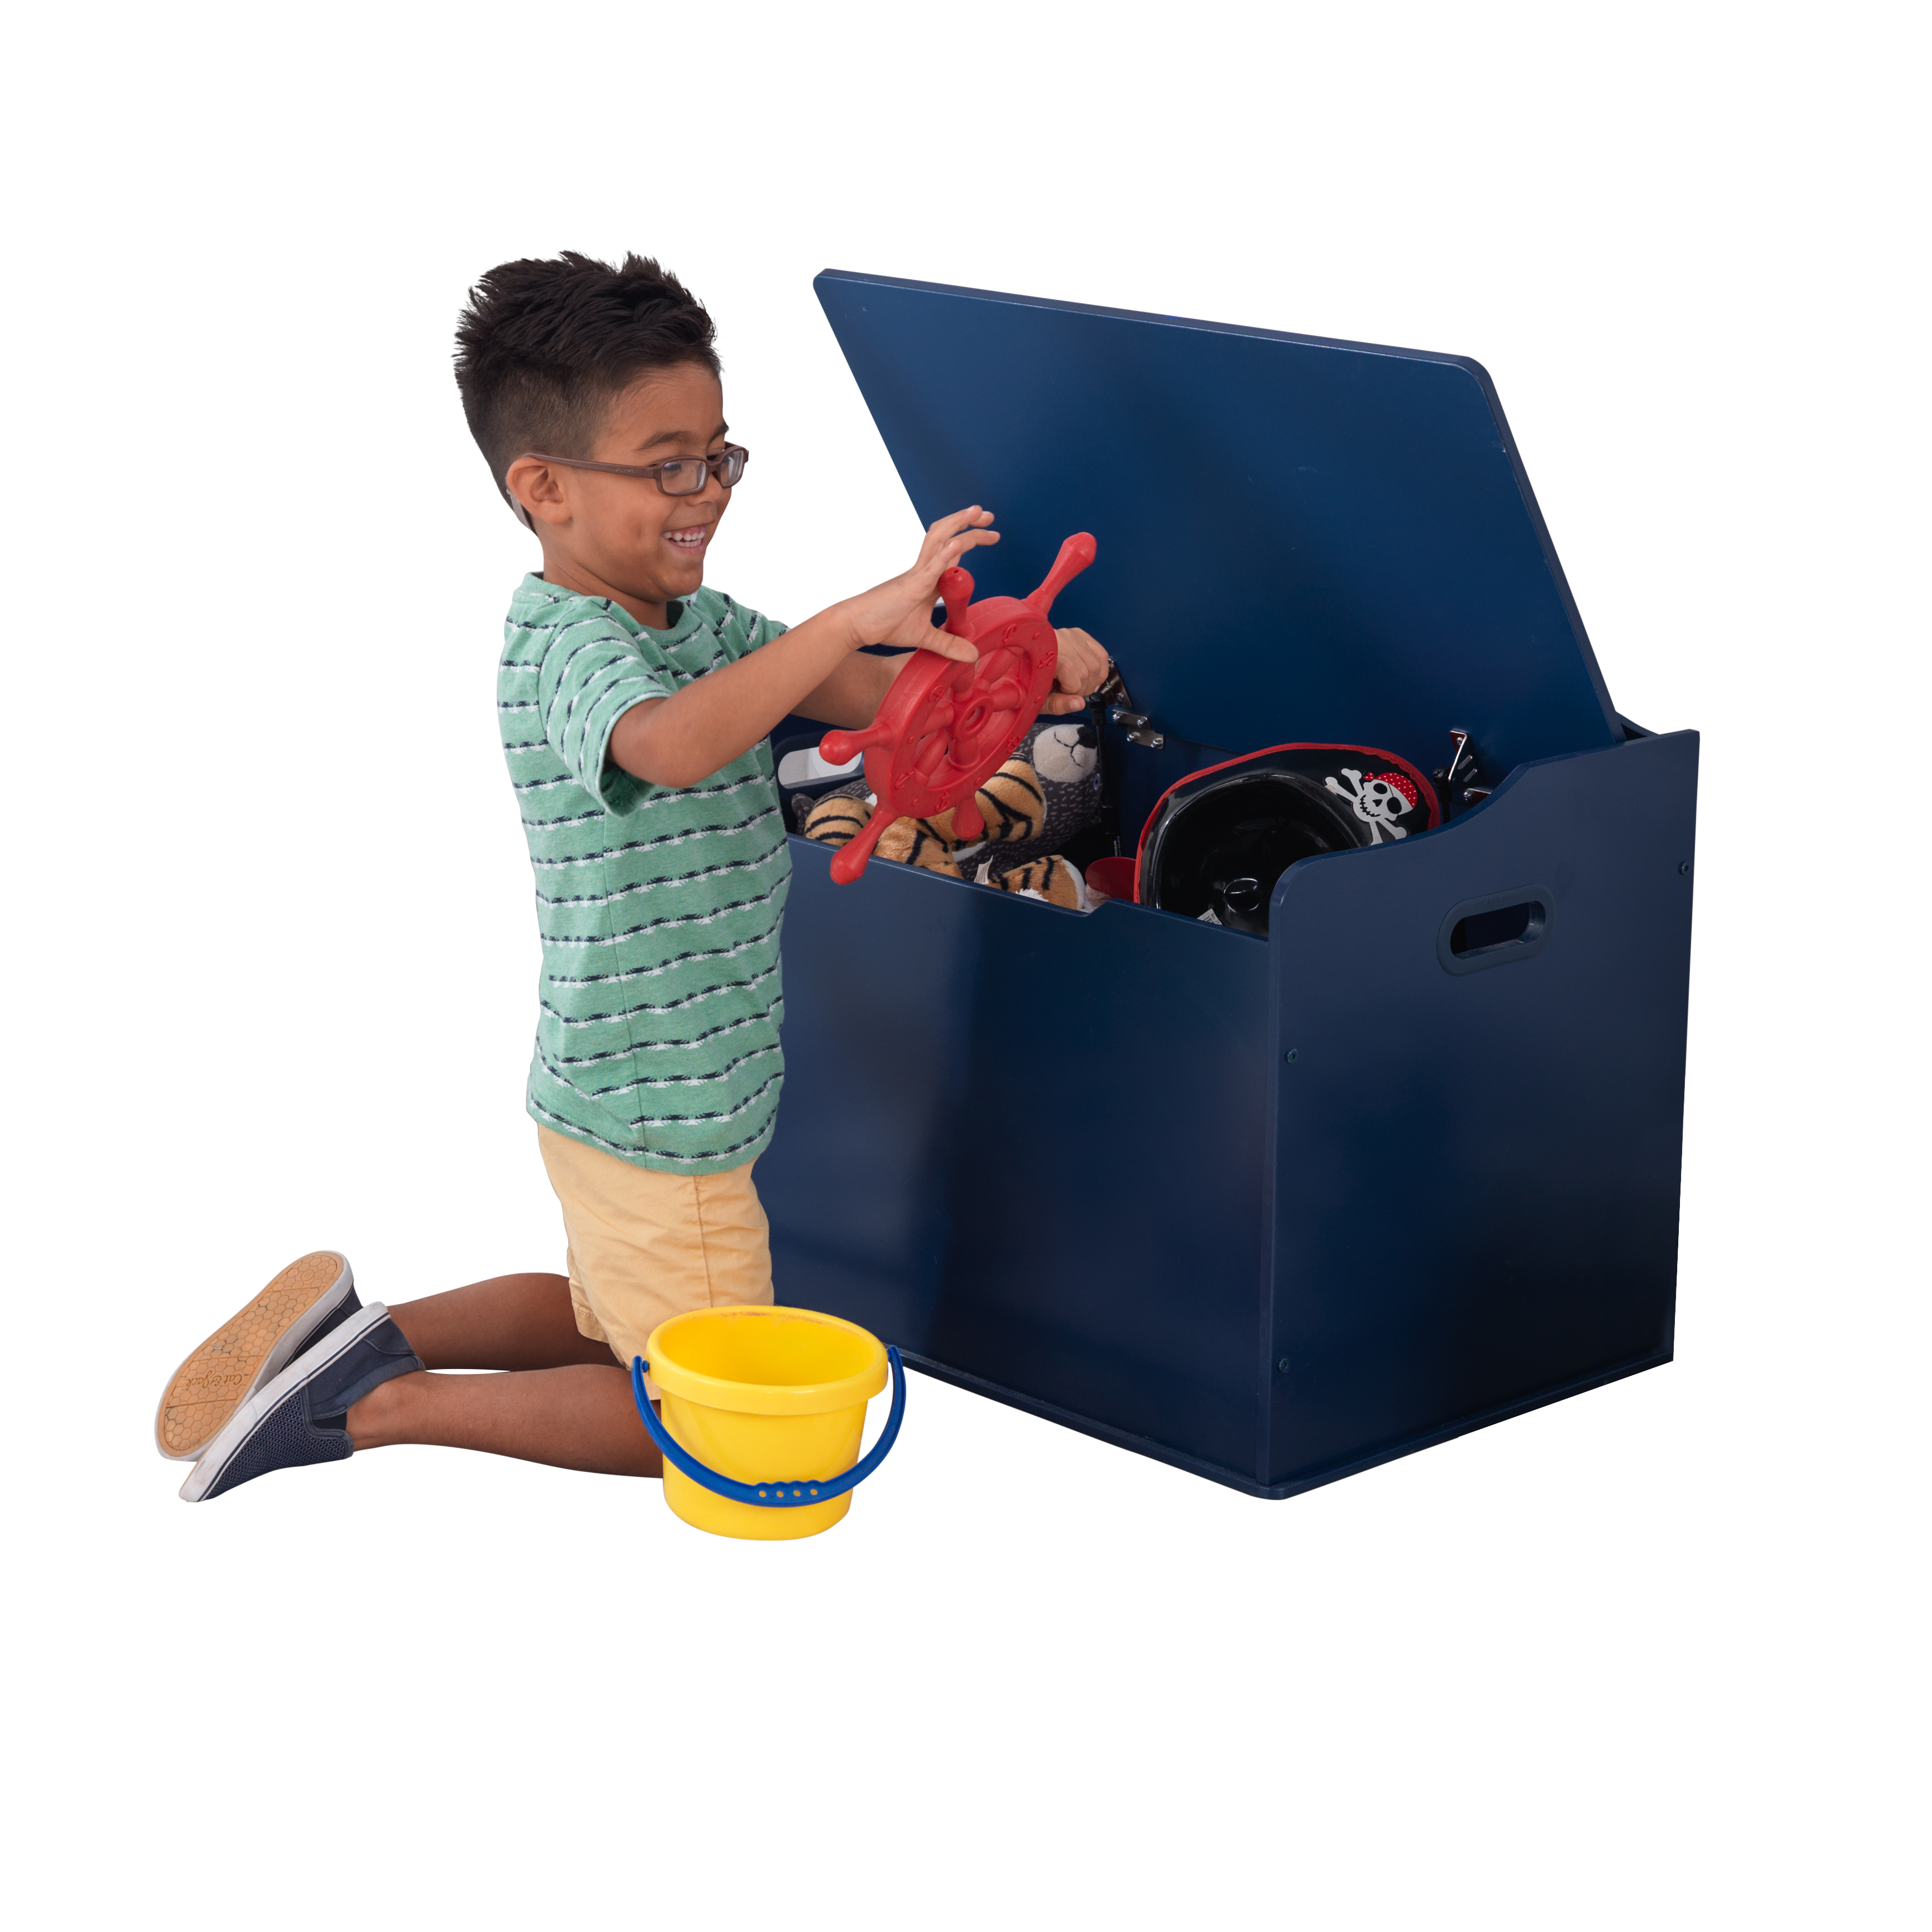 KidKraft Austin Wooden Toy Box/Bench with Safety Hinged Lid - Blueberry